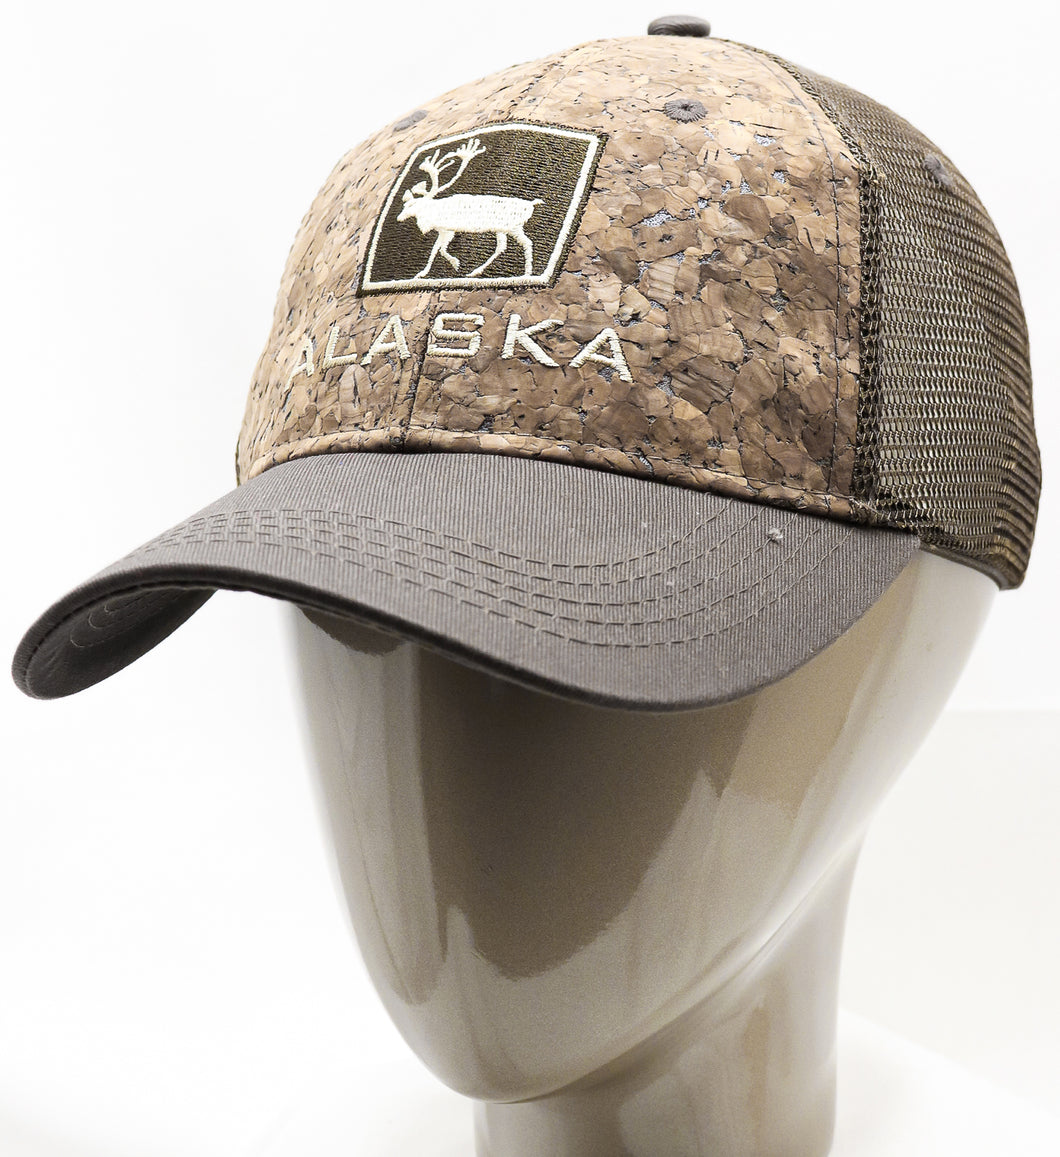 CORK AK CARIBOU ADJUSTABLE MESH BASEBALL HAT